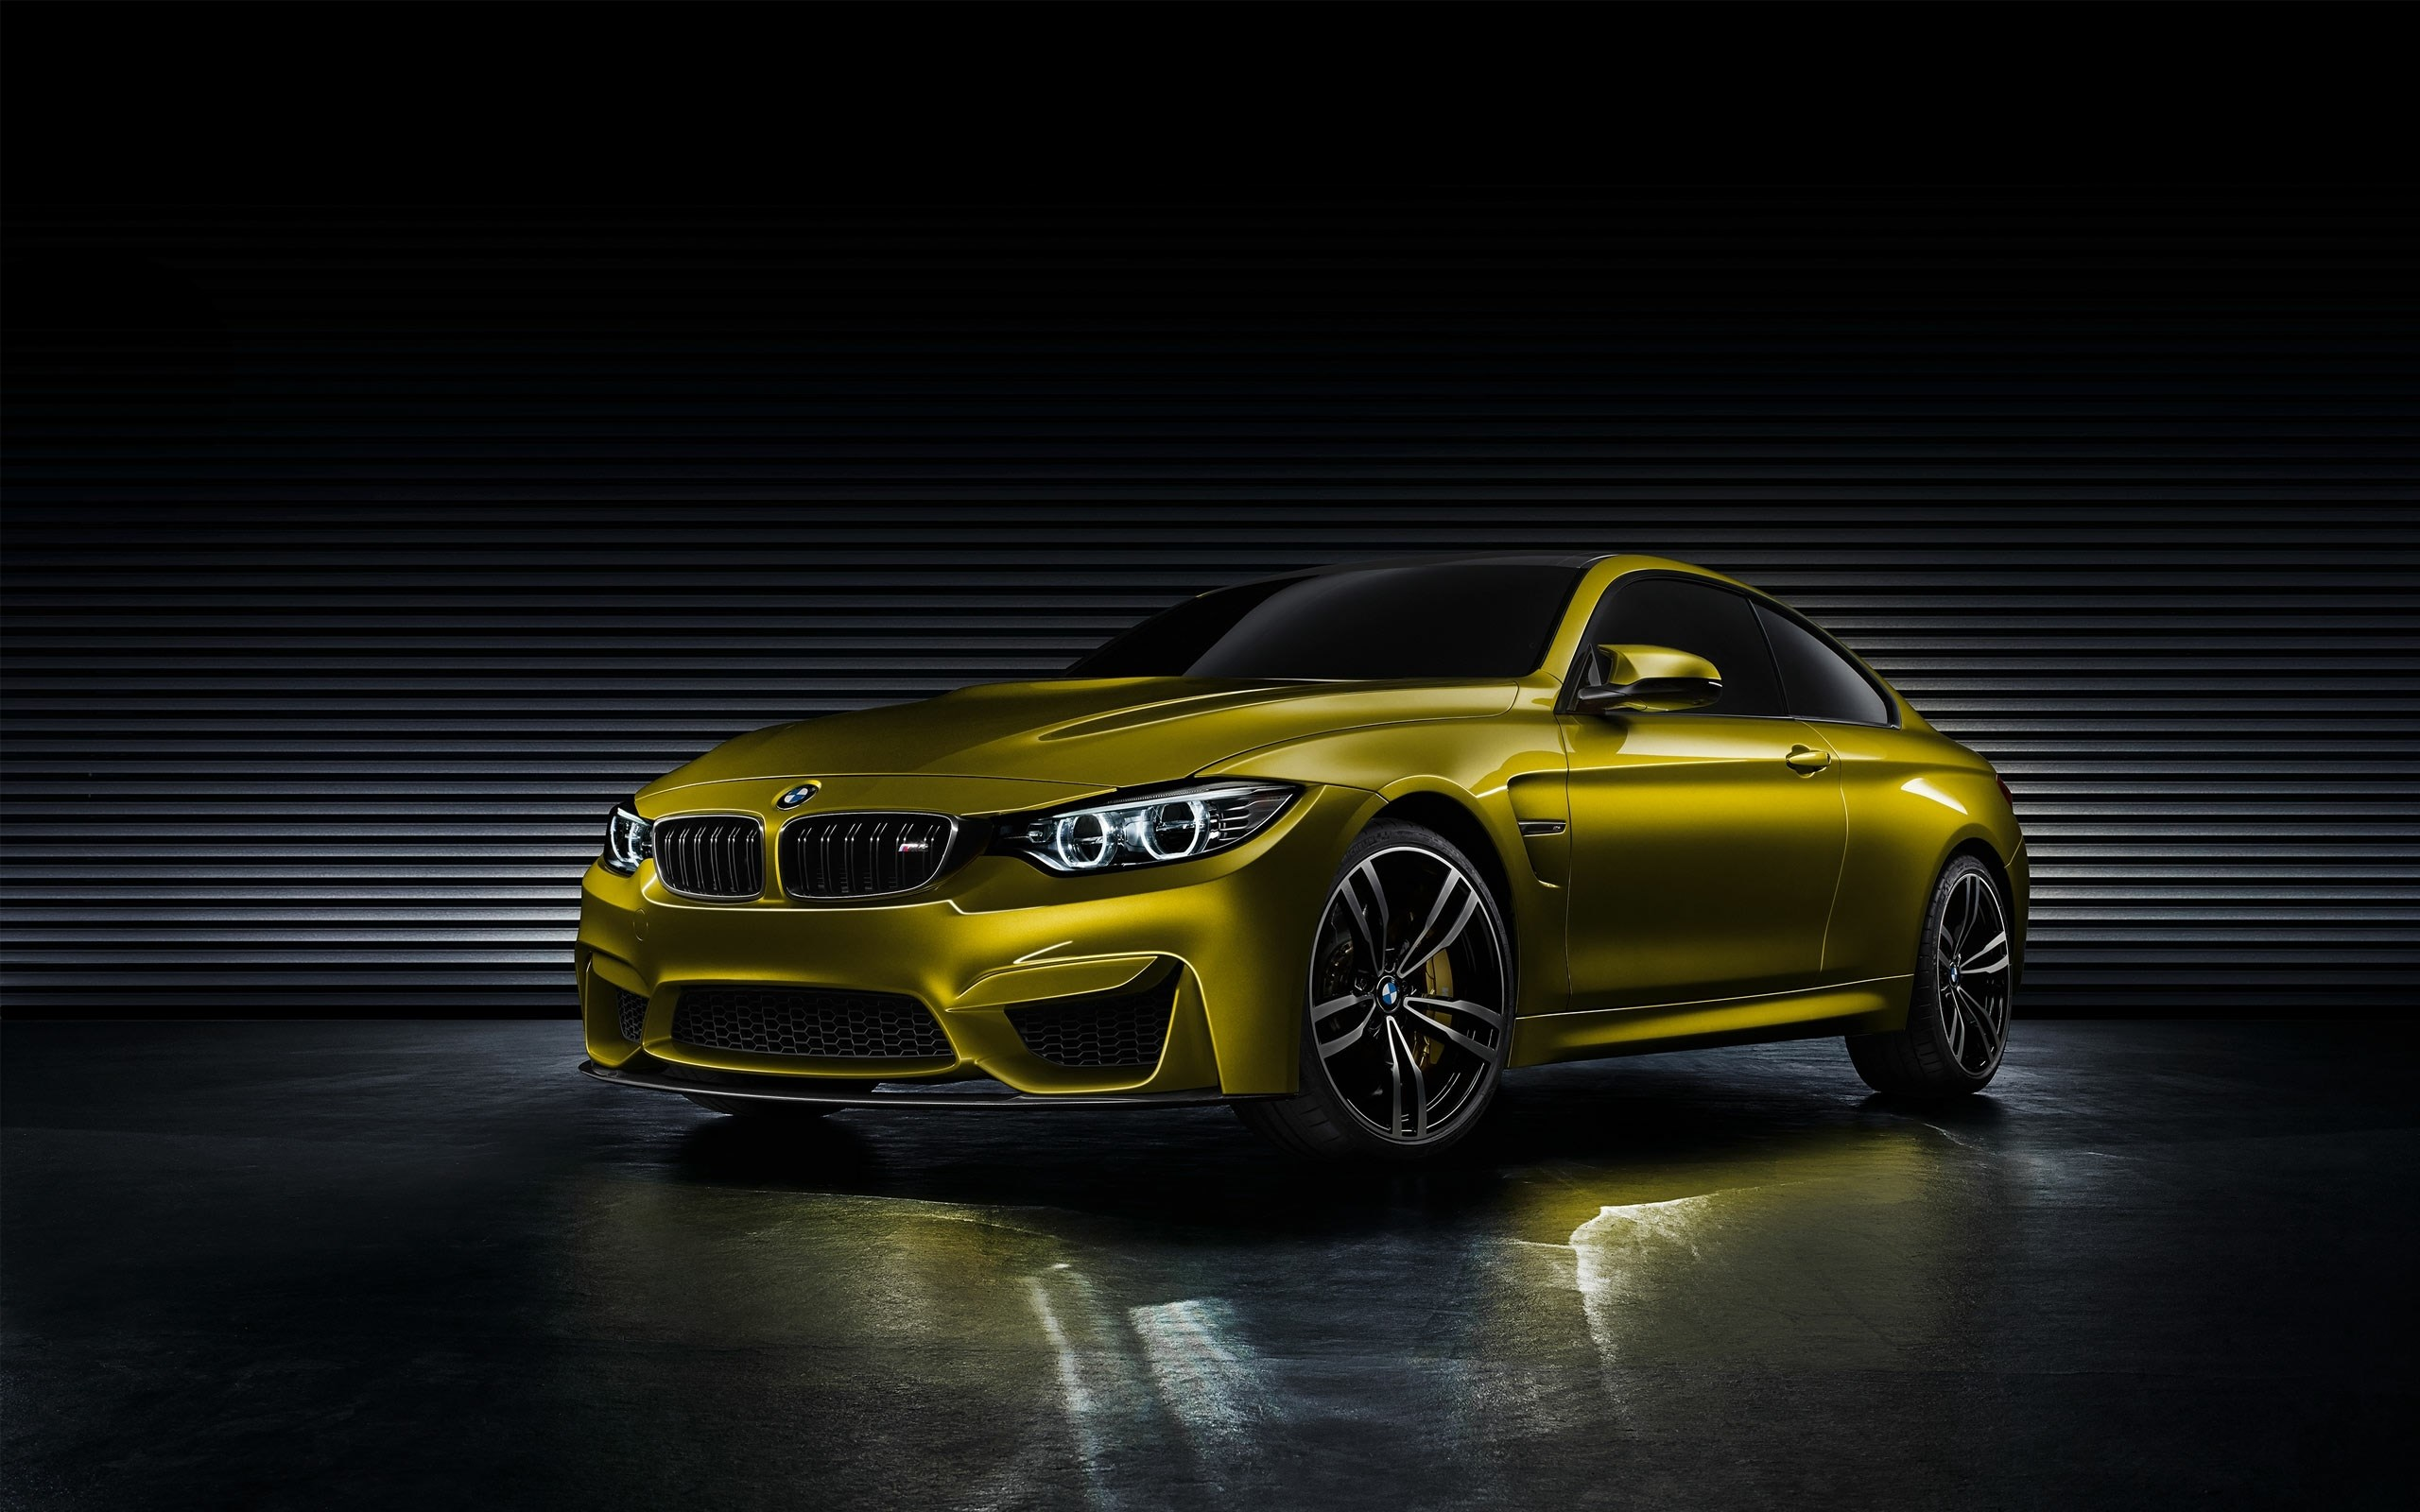 Bmw M4 Coupe Concept Car Front 2560x1600 Download Hd Wallpaper Wallpapertip